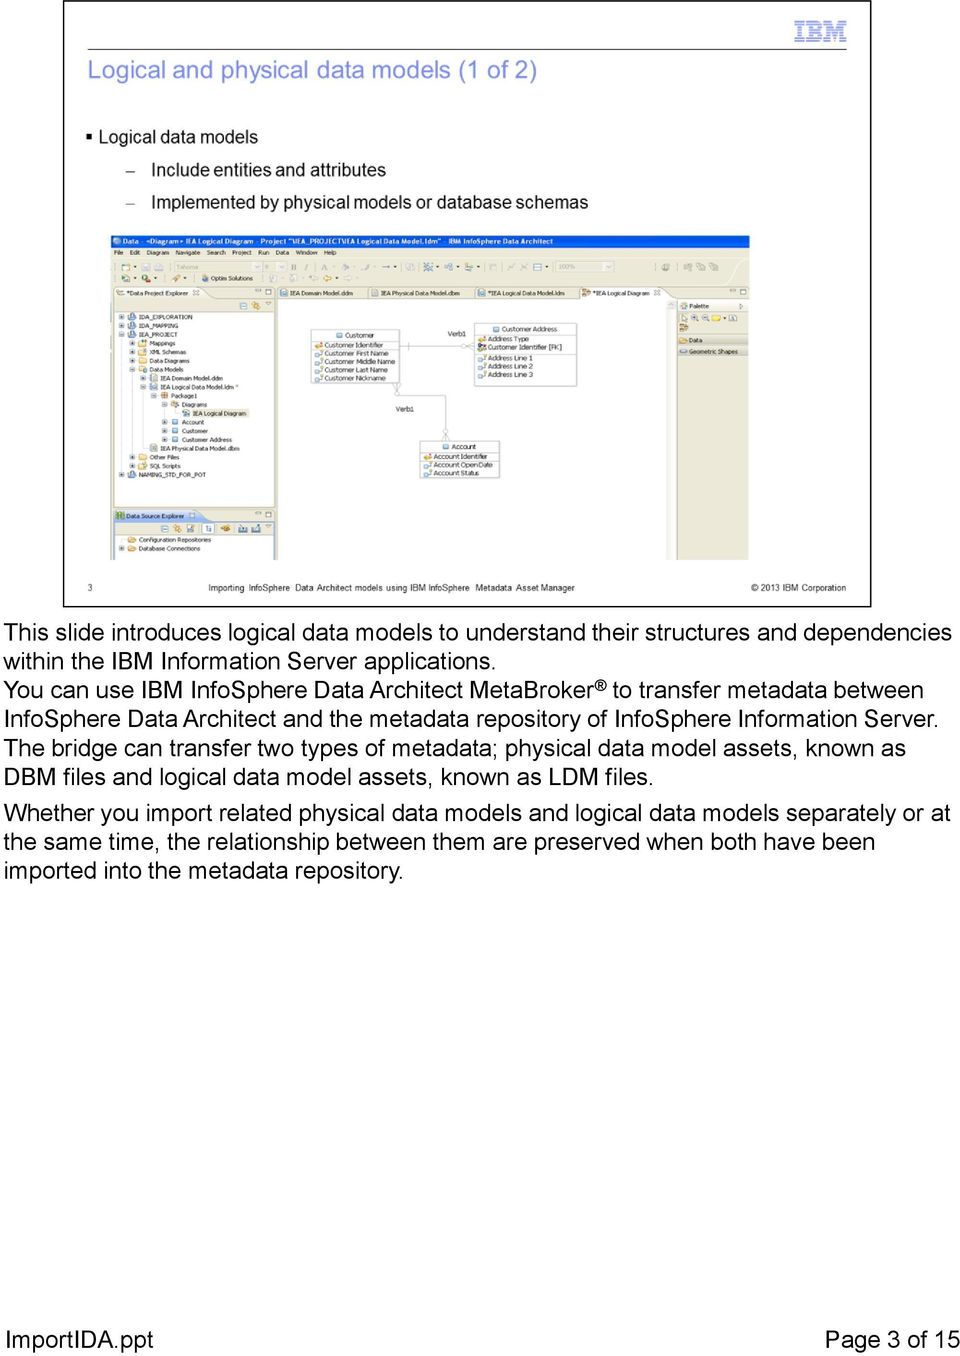 Server. The bridge can transfer two types of metadata; physical data model assets, known as DBM files and logical data model assets, known as LDM files.